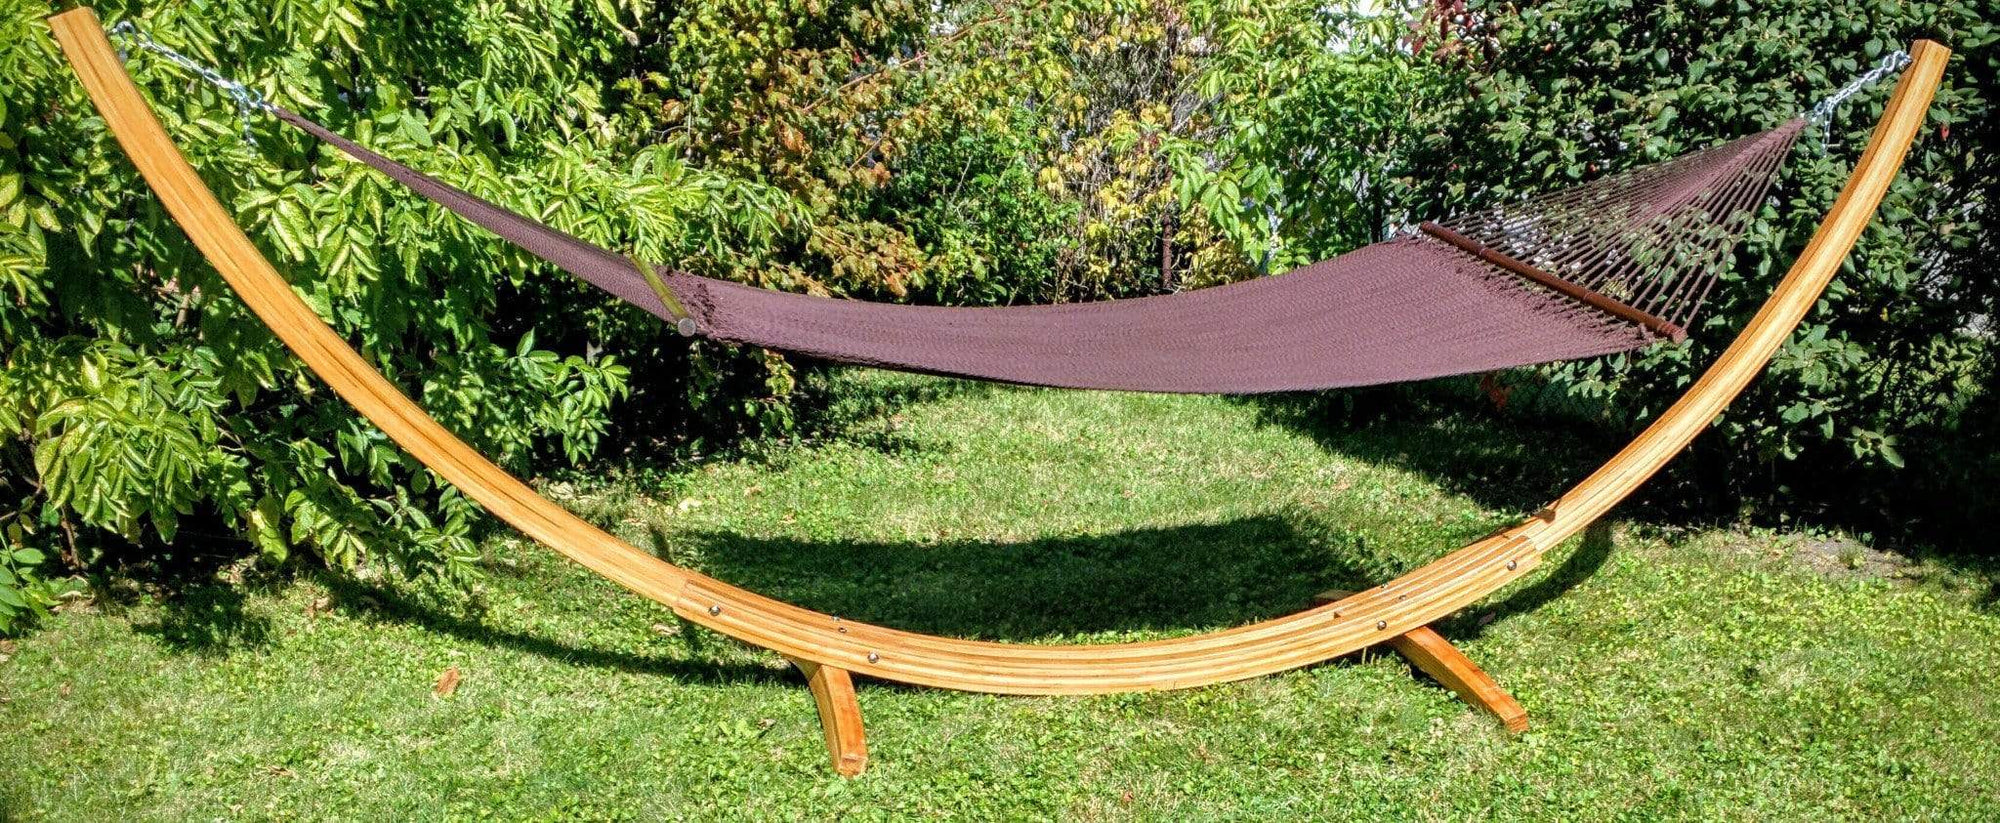 Deluxe Polyester Rope Hammock with Bamboo Stand - Hammock Universe Canada